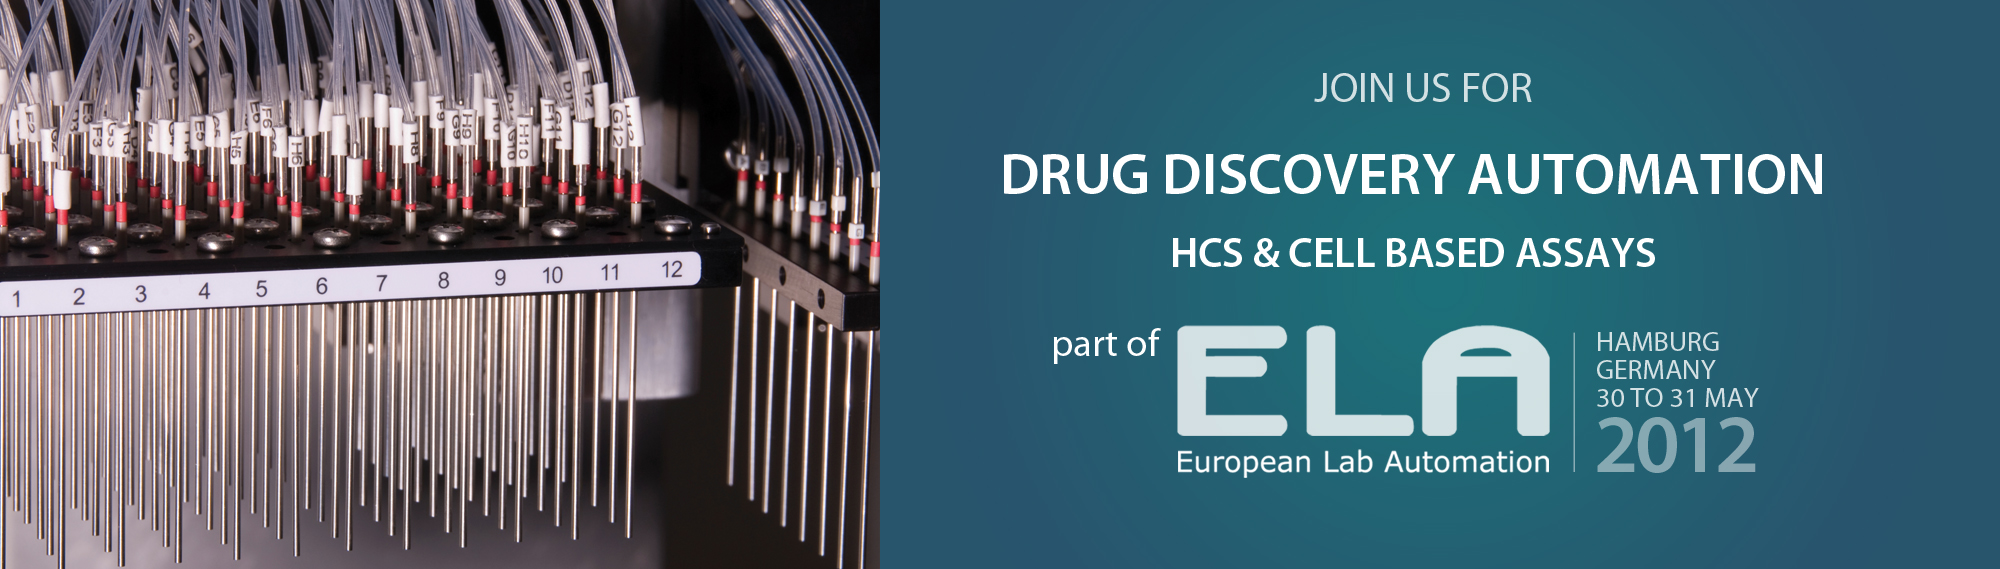 Drug Discovery Automation - HCS & Cell Based Assays